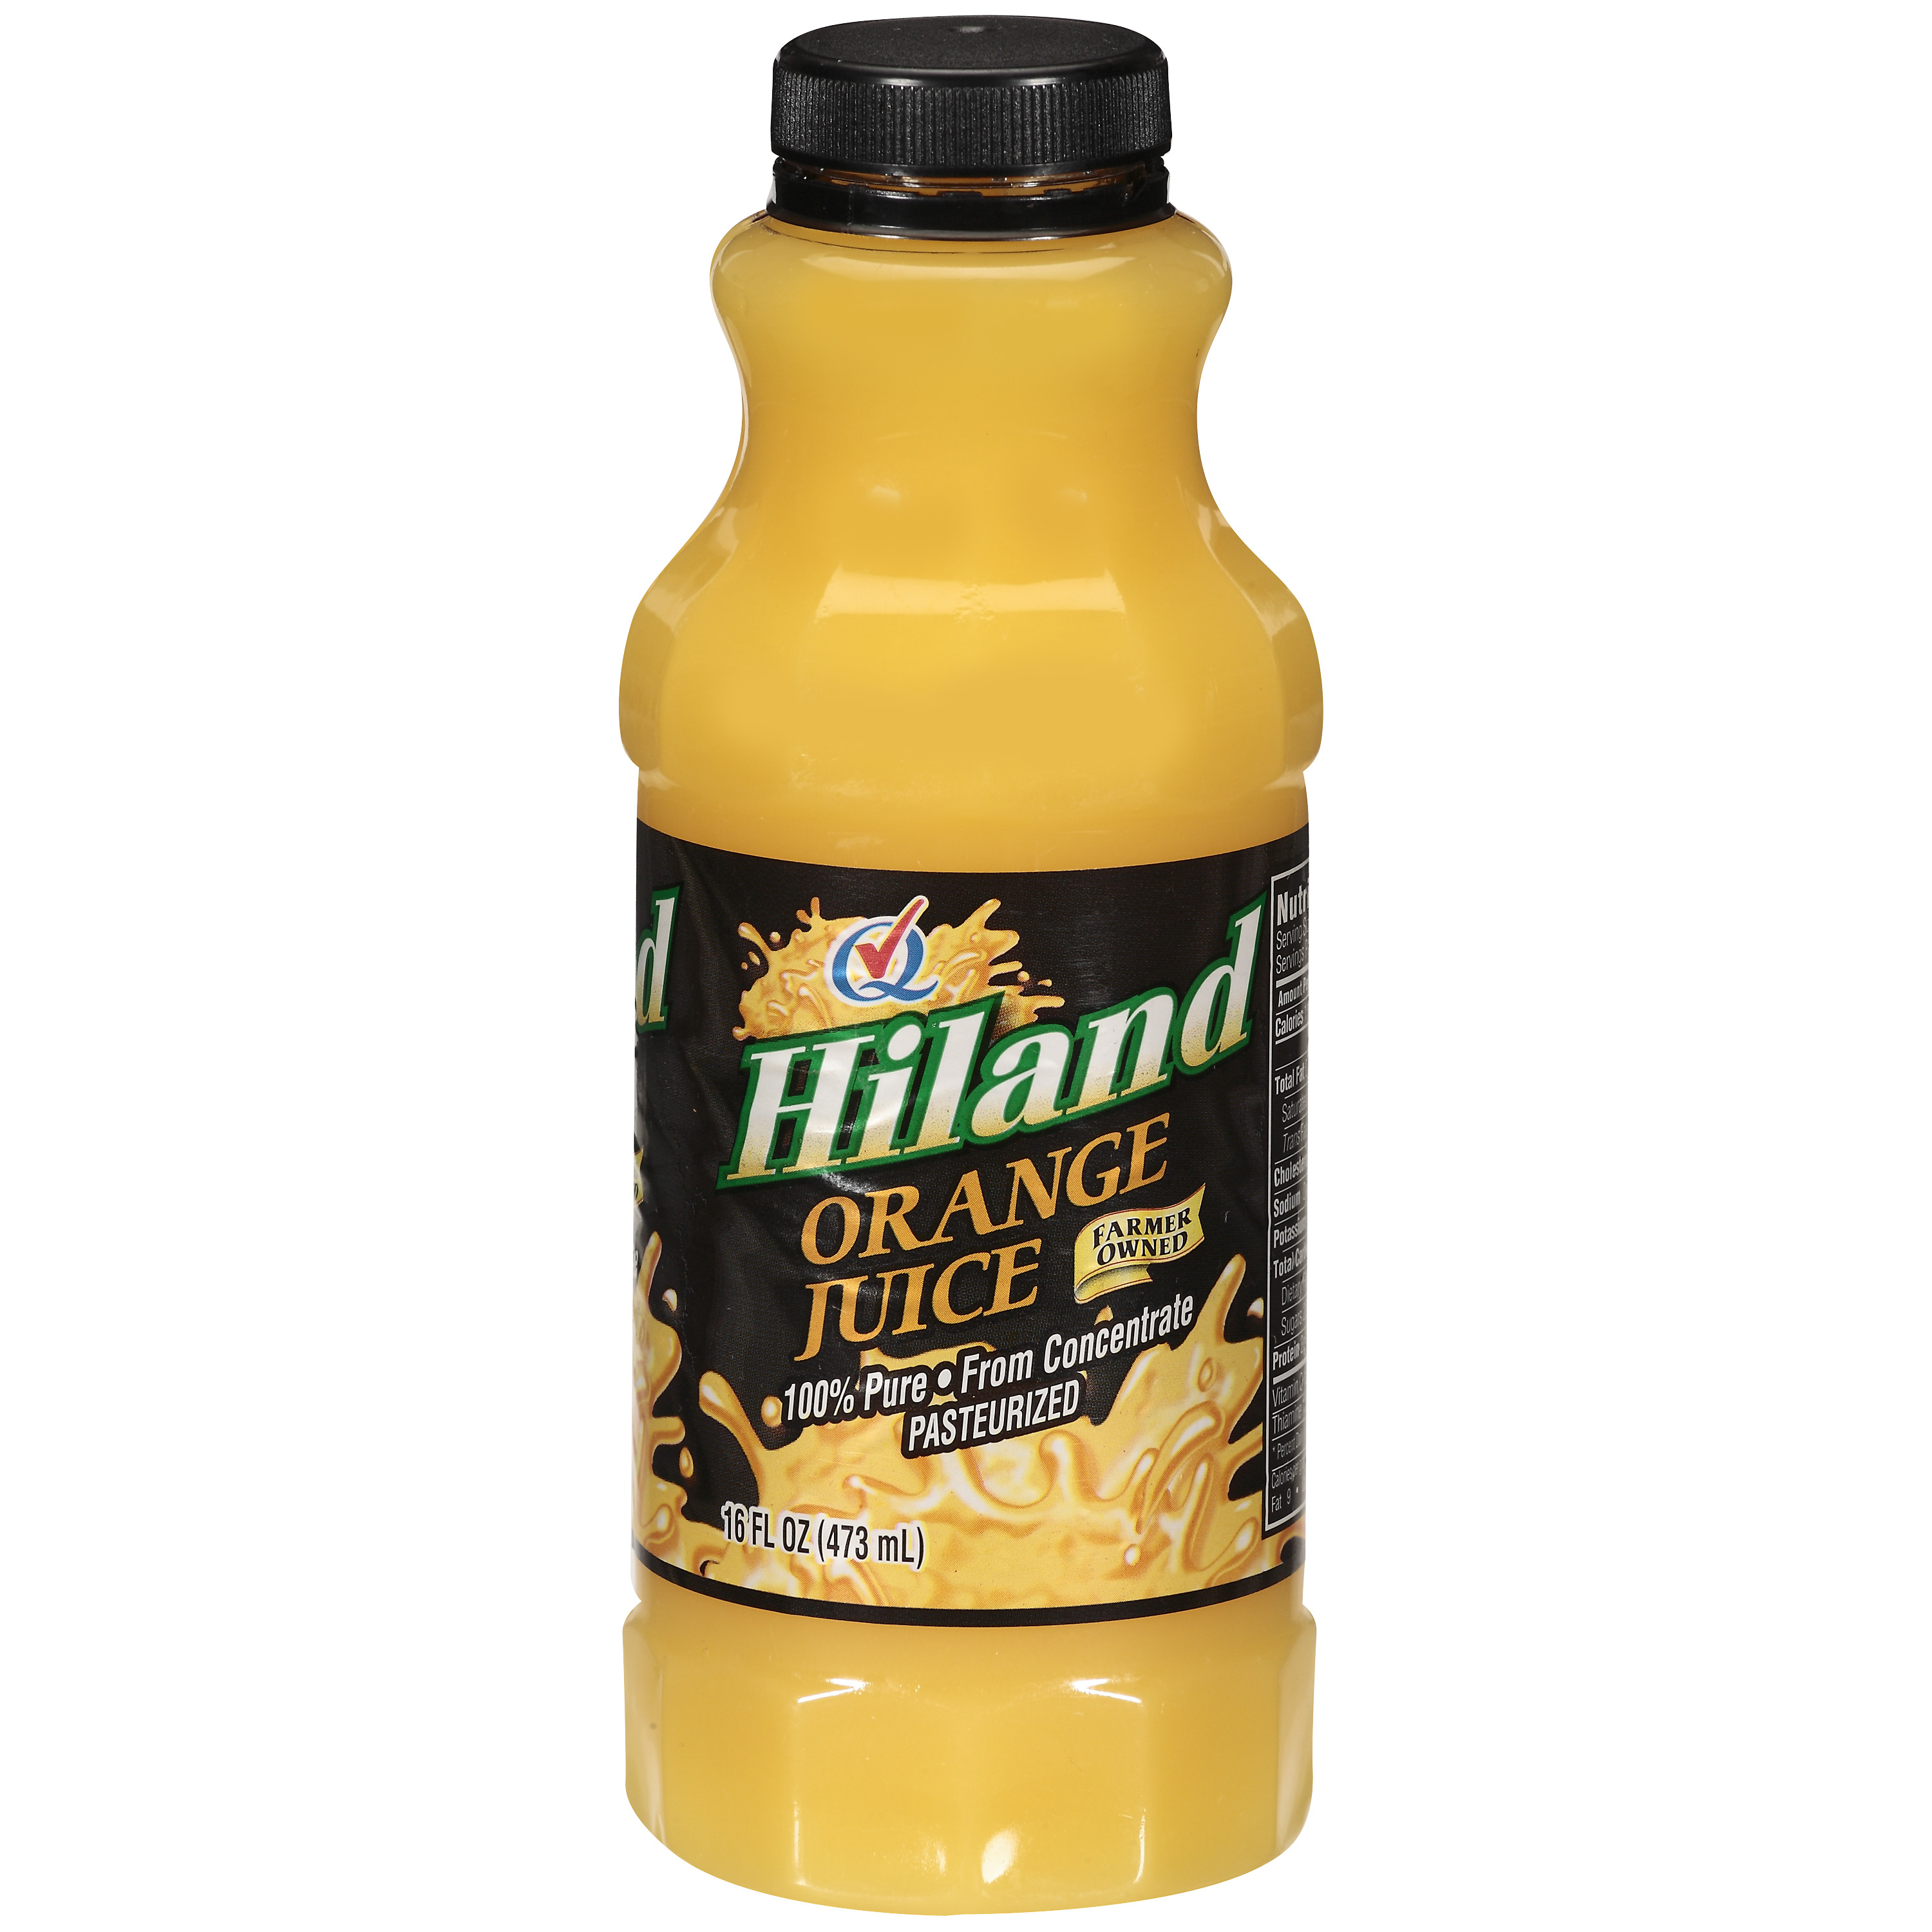 Hiland Orange Juice, 16 oz